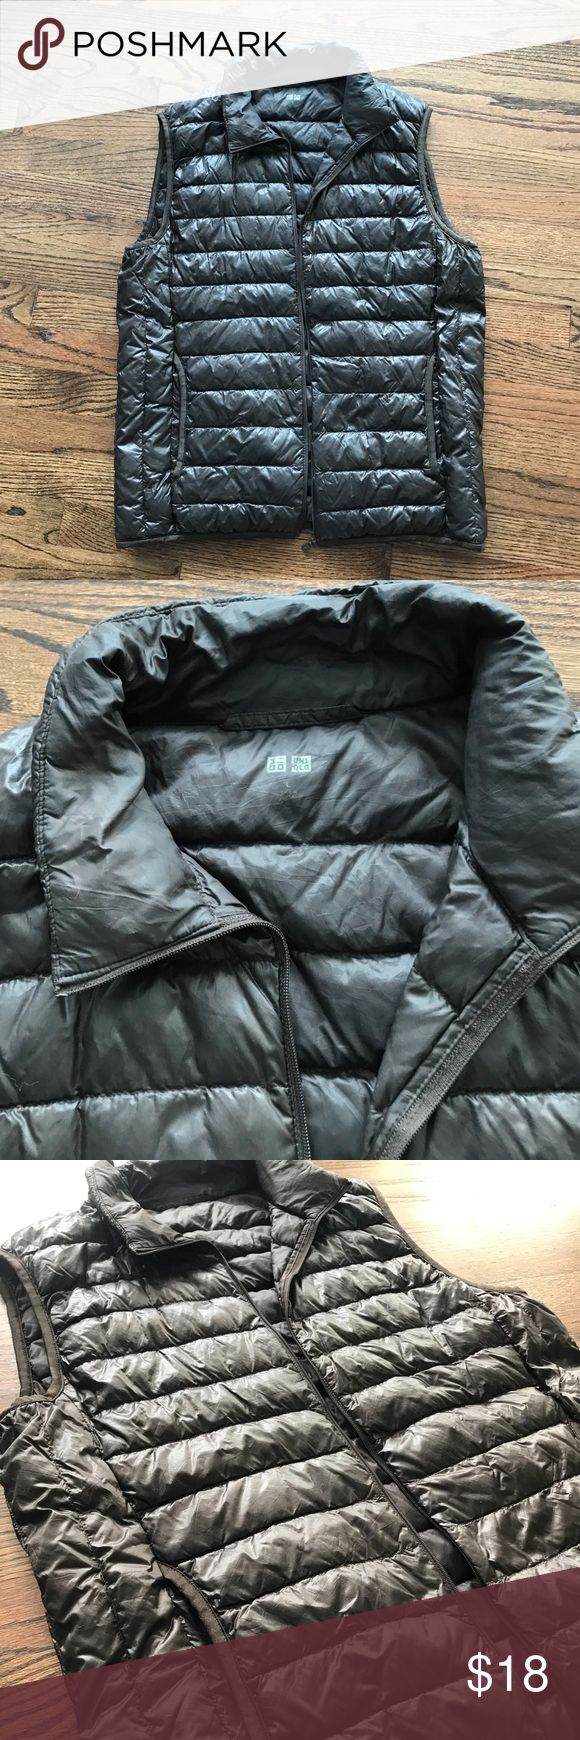 Uniqlo Light Weight Vest Dark brown color, size M, good used condition Uniqlo Jackets & Coats Vests